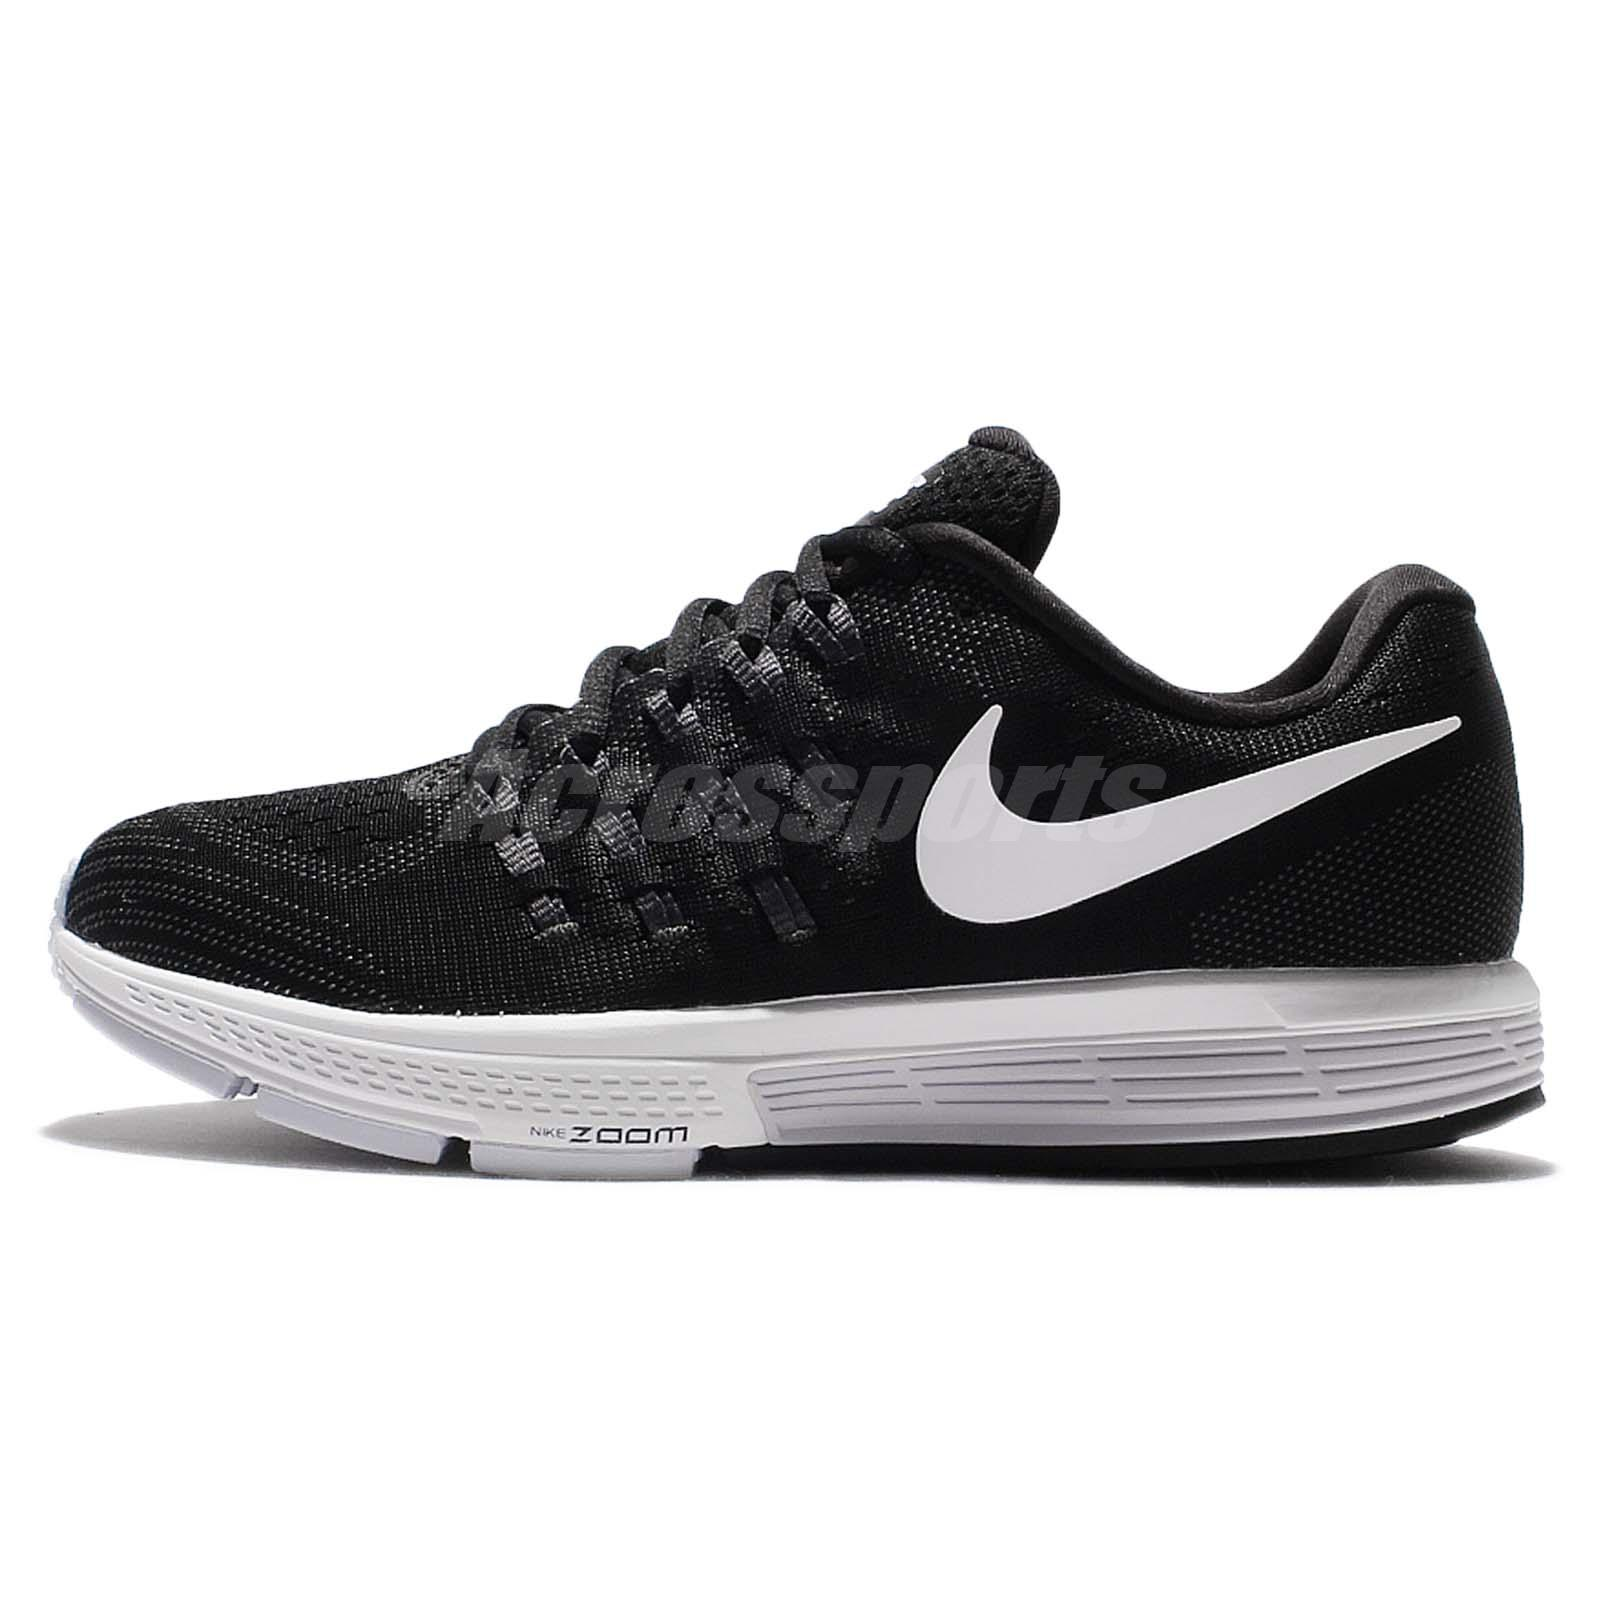 42ed1b0a4c1 Wmns Nike Air Zoom Vomero 11 Black White Women Running Shoes Sneakers 818100 -001